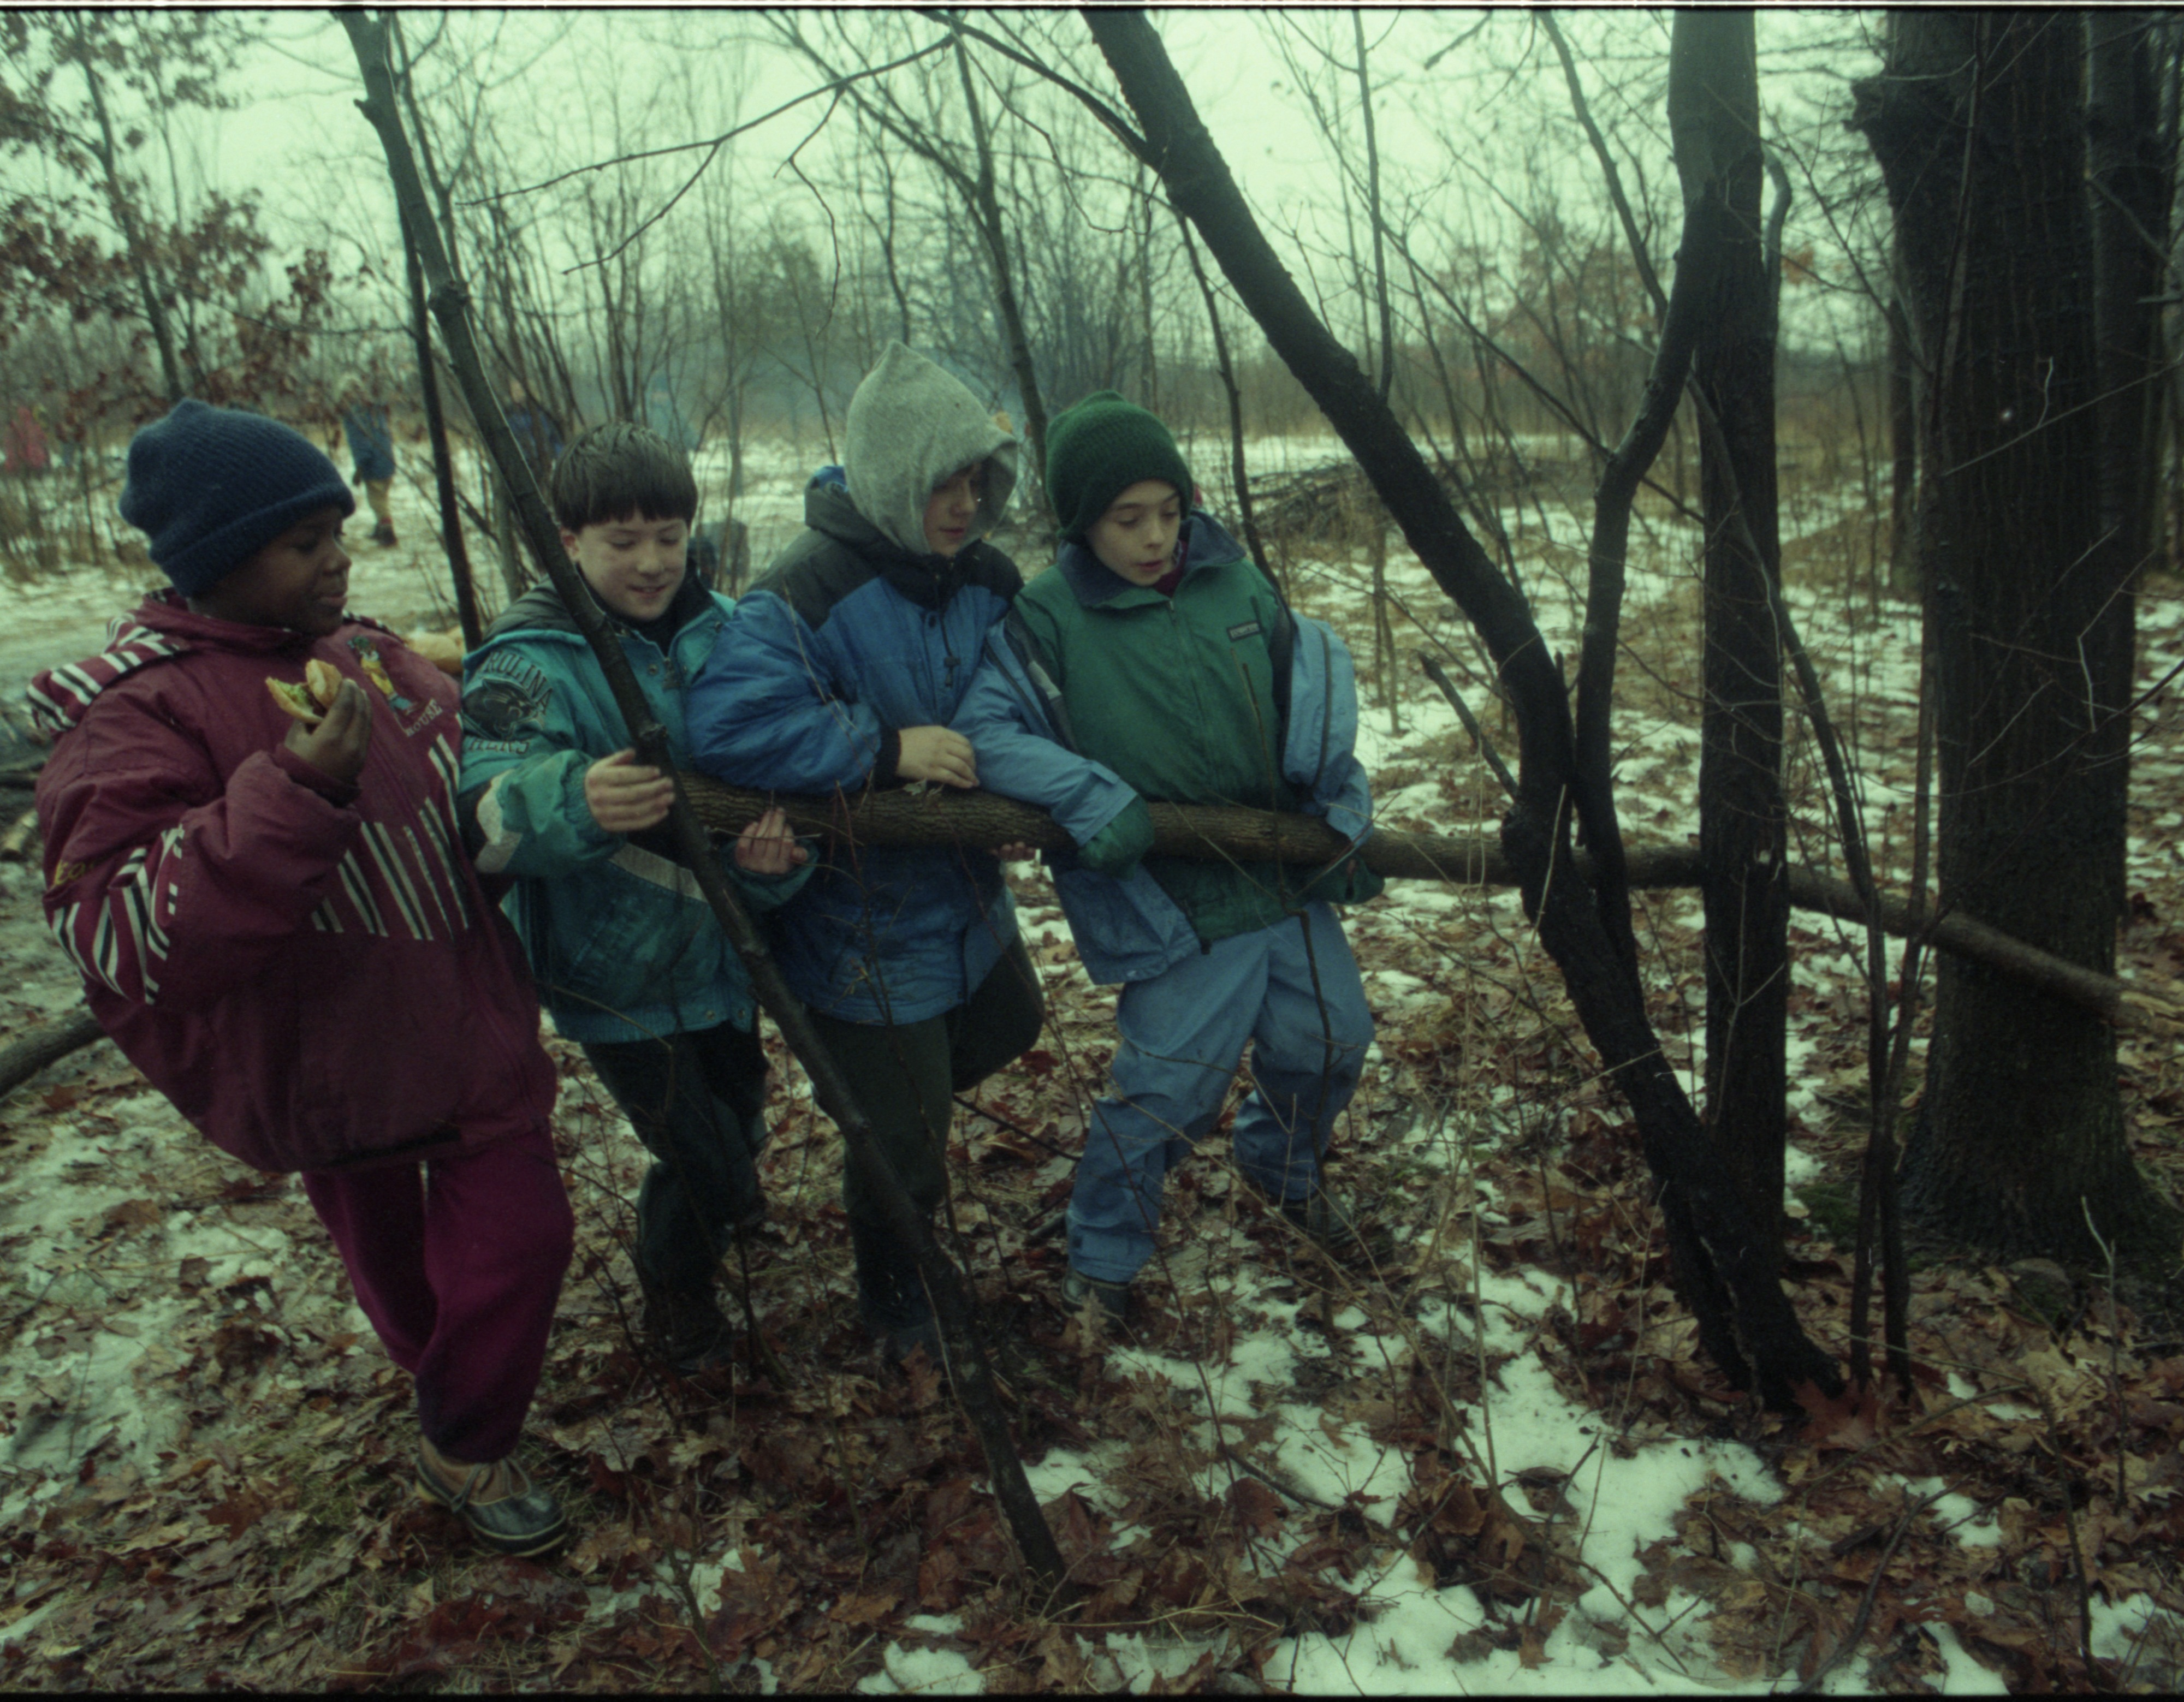 Eberwhite School Students Drag Wood In Winter Survival Skills Outing, January 1997 image